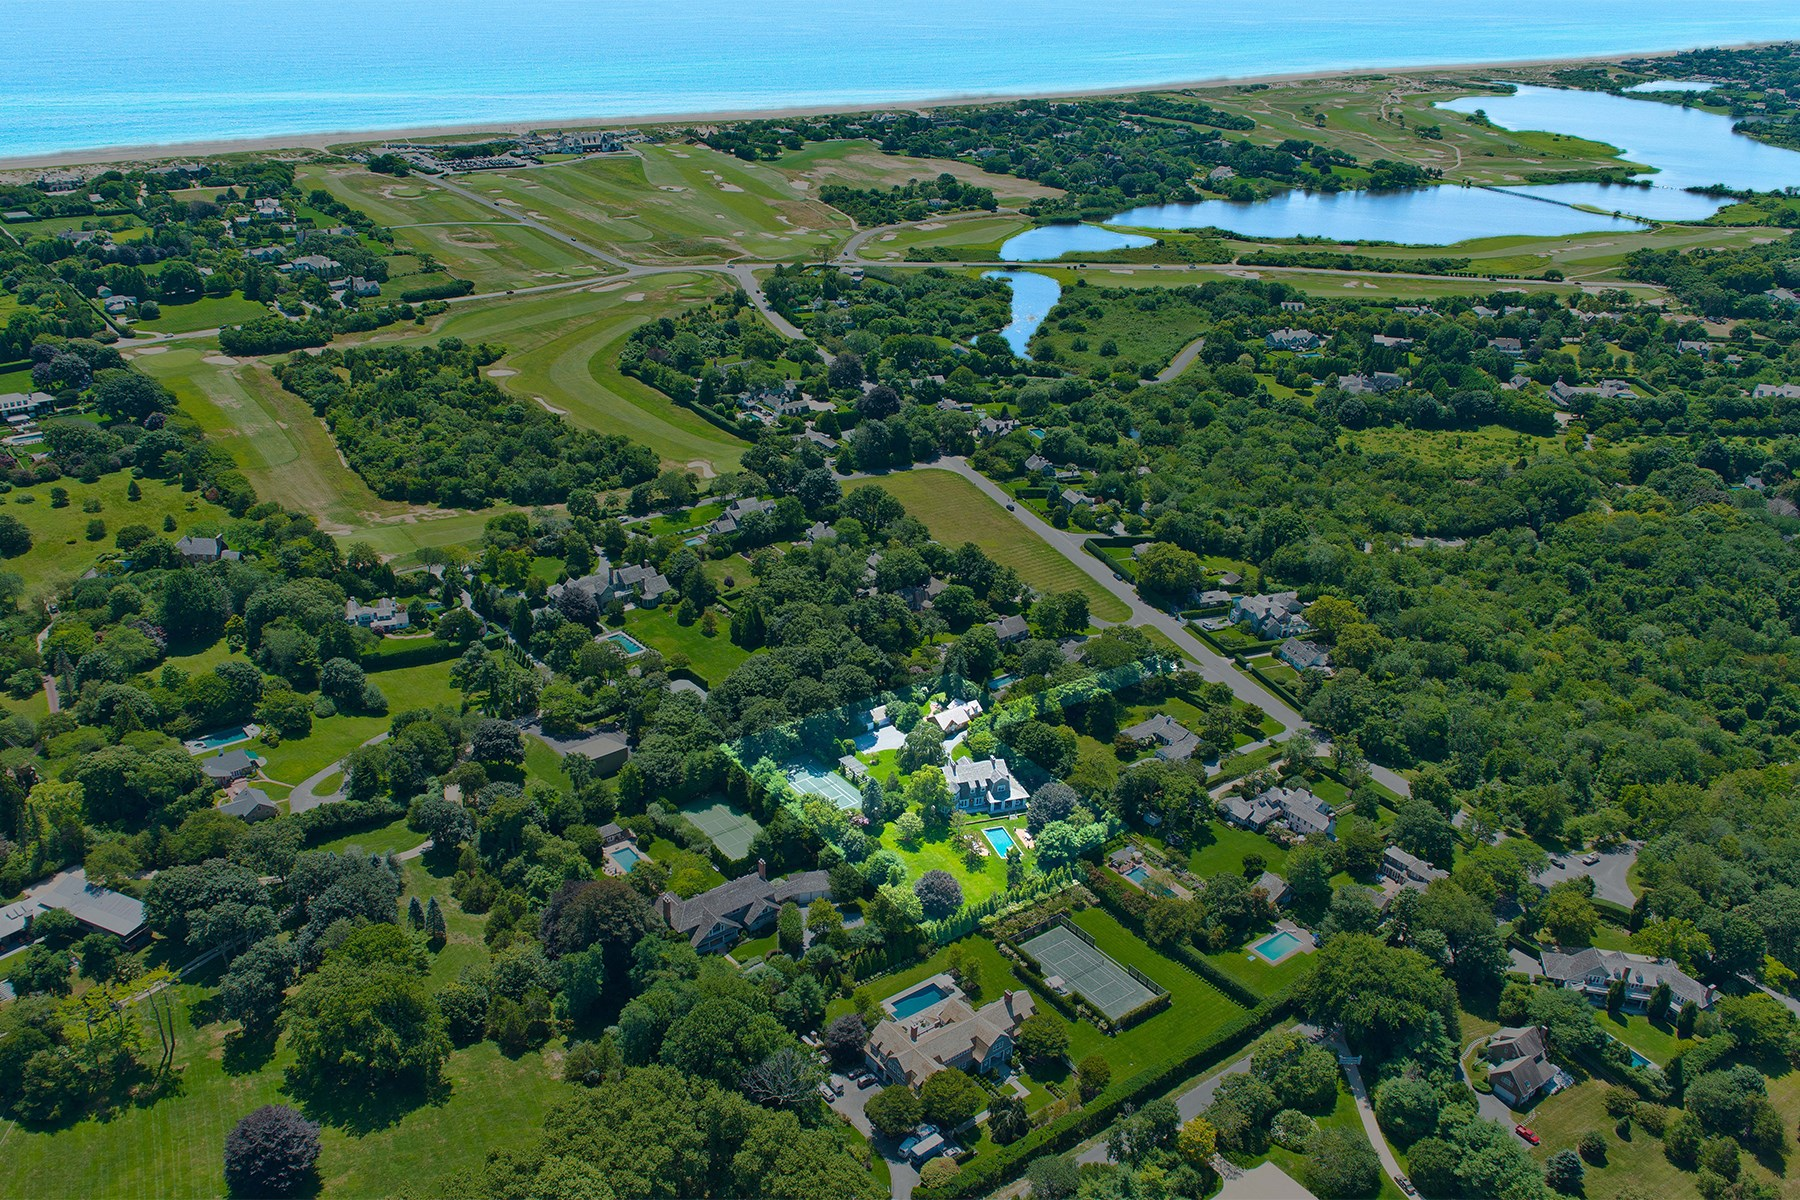 Single Family Home for Sale at Egypt Lane Compound East Hampton, New York, 11937 United States